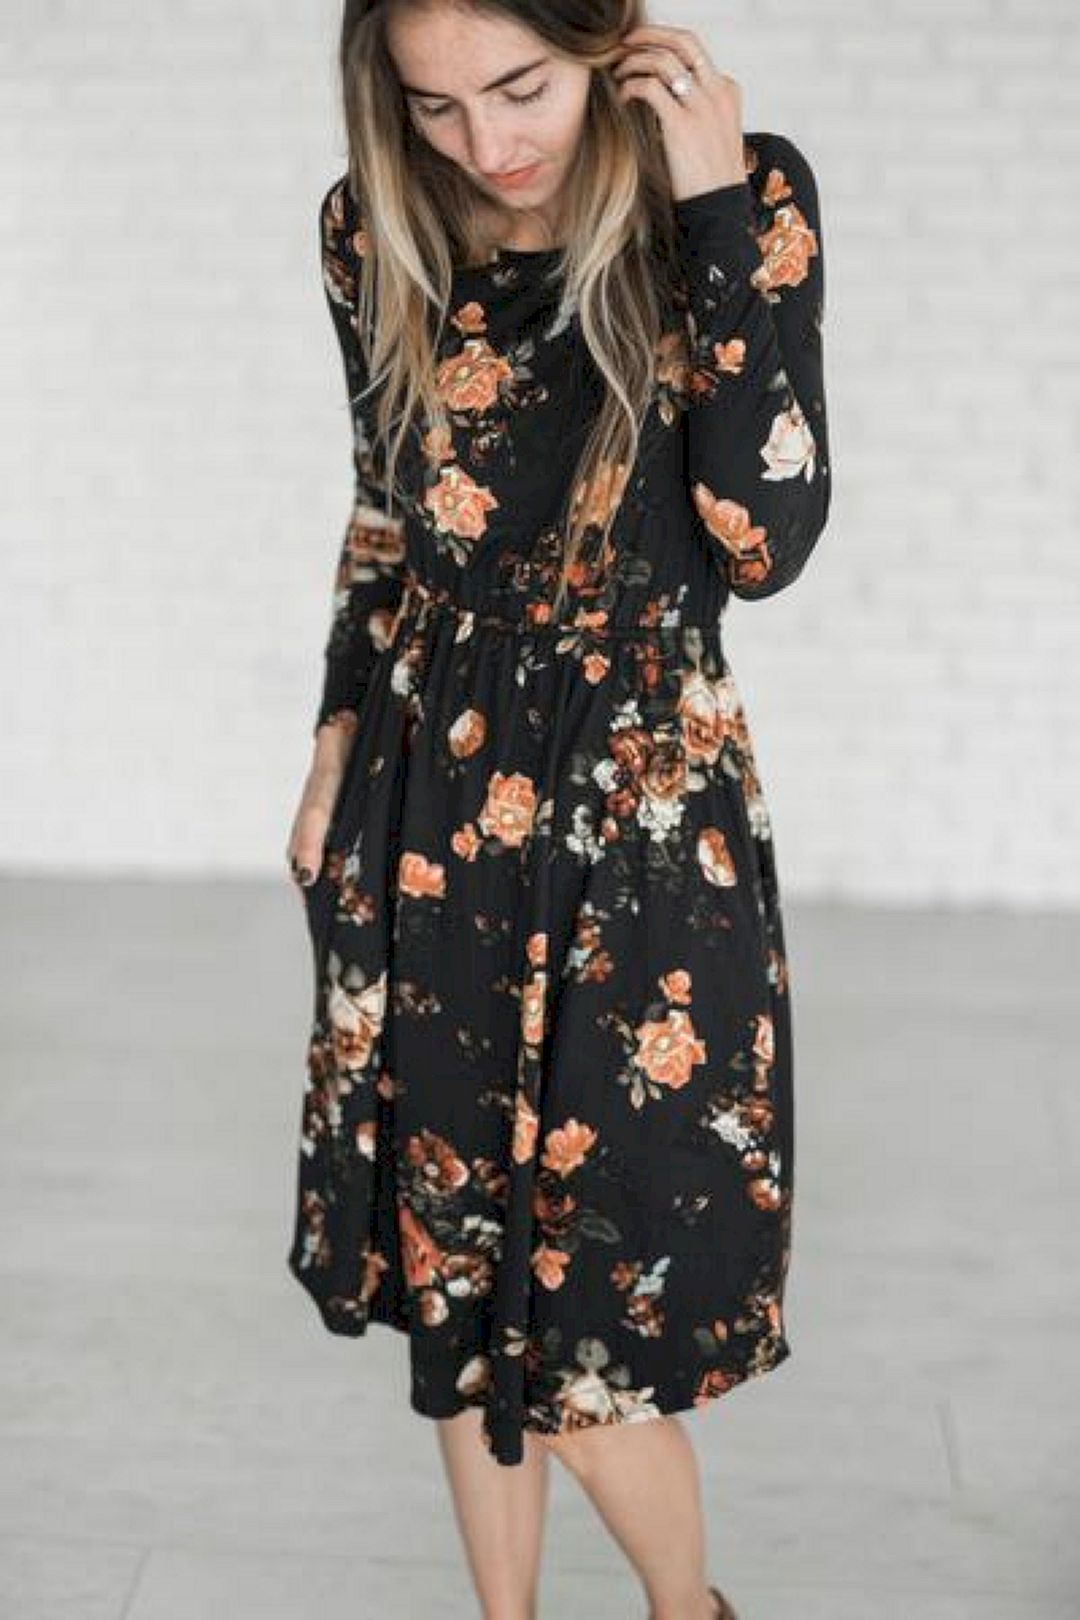 Lovely 123 Popular And Lovely Women S Floral Print Dresses Outfit Ideas Spring Summer Http Uniqlog Com Floral Print Dress Outfit Printed Dress Outfit Fashion [ 1620 x 1080 Pixel ]